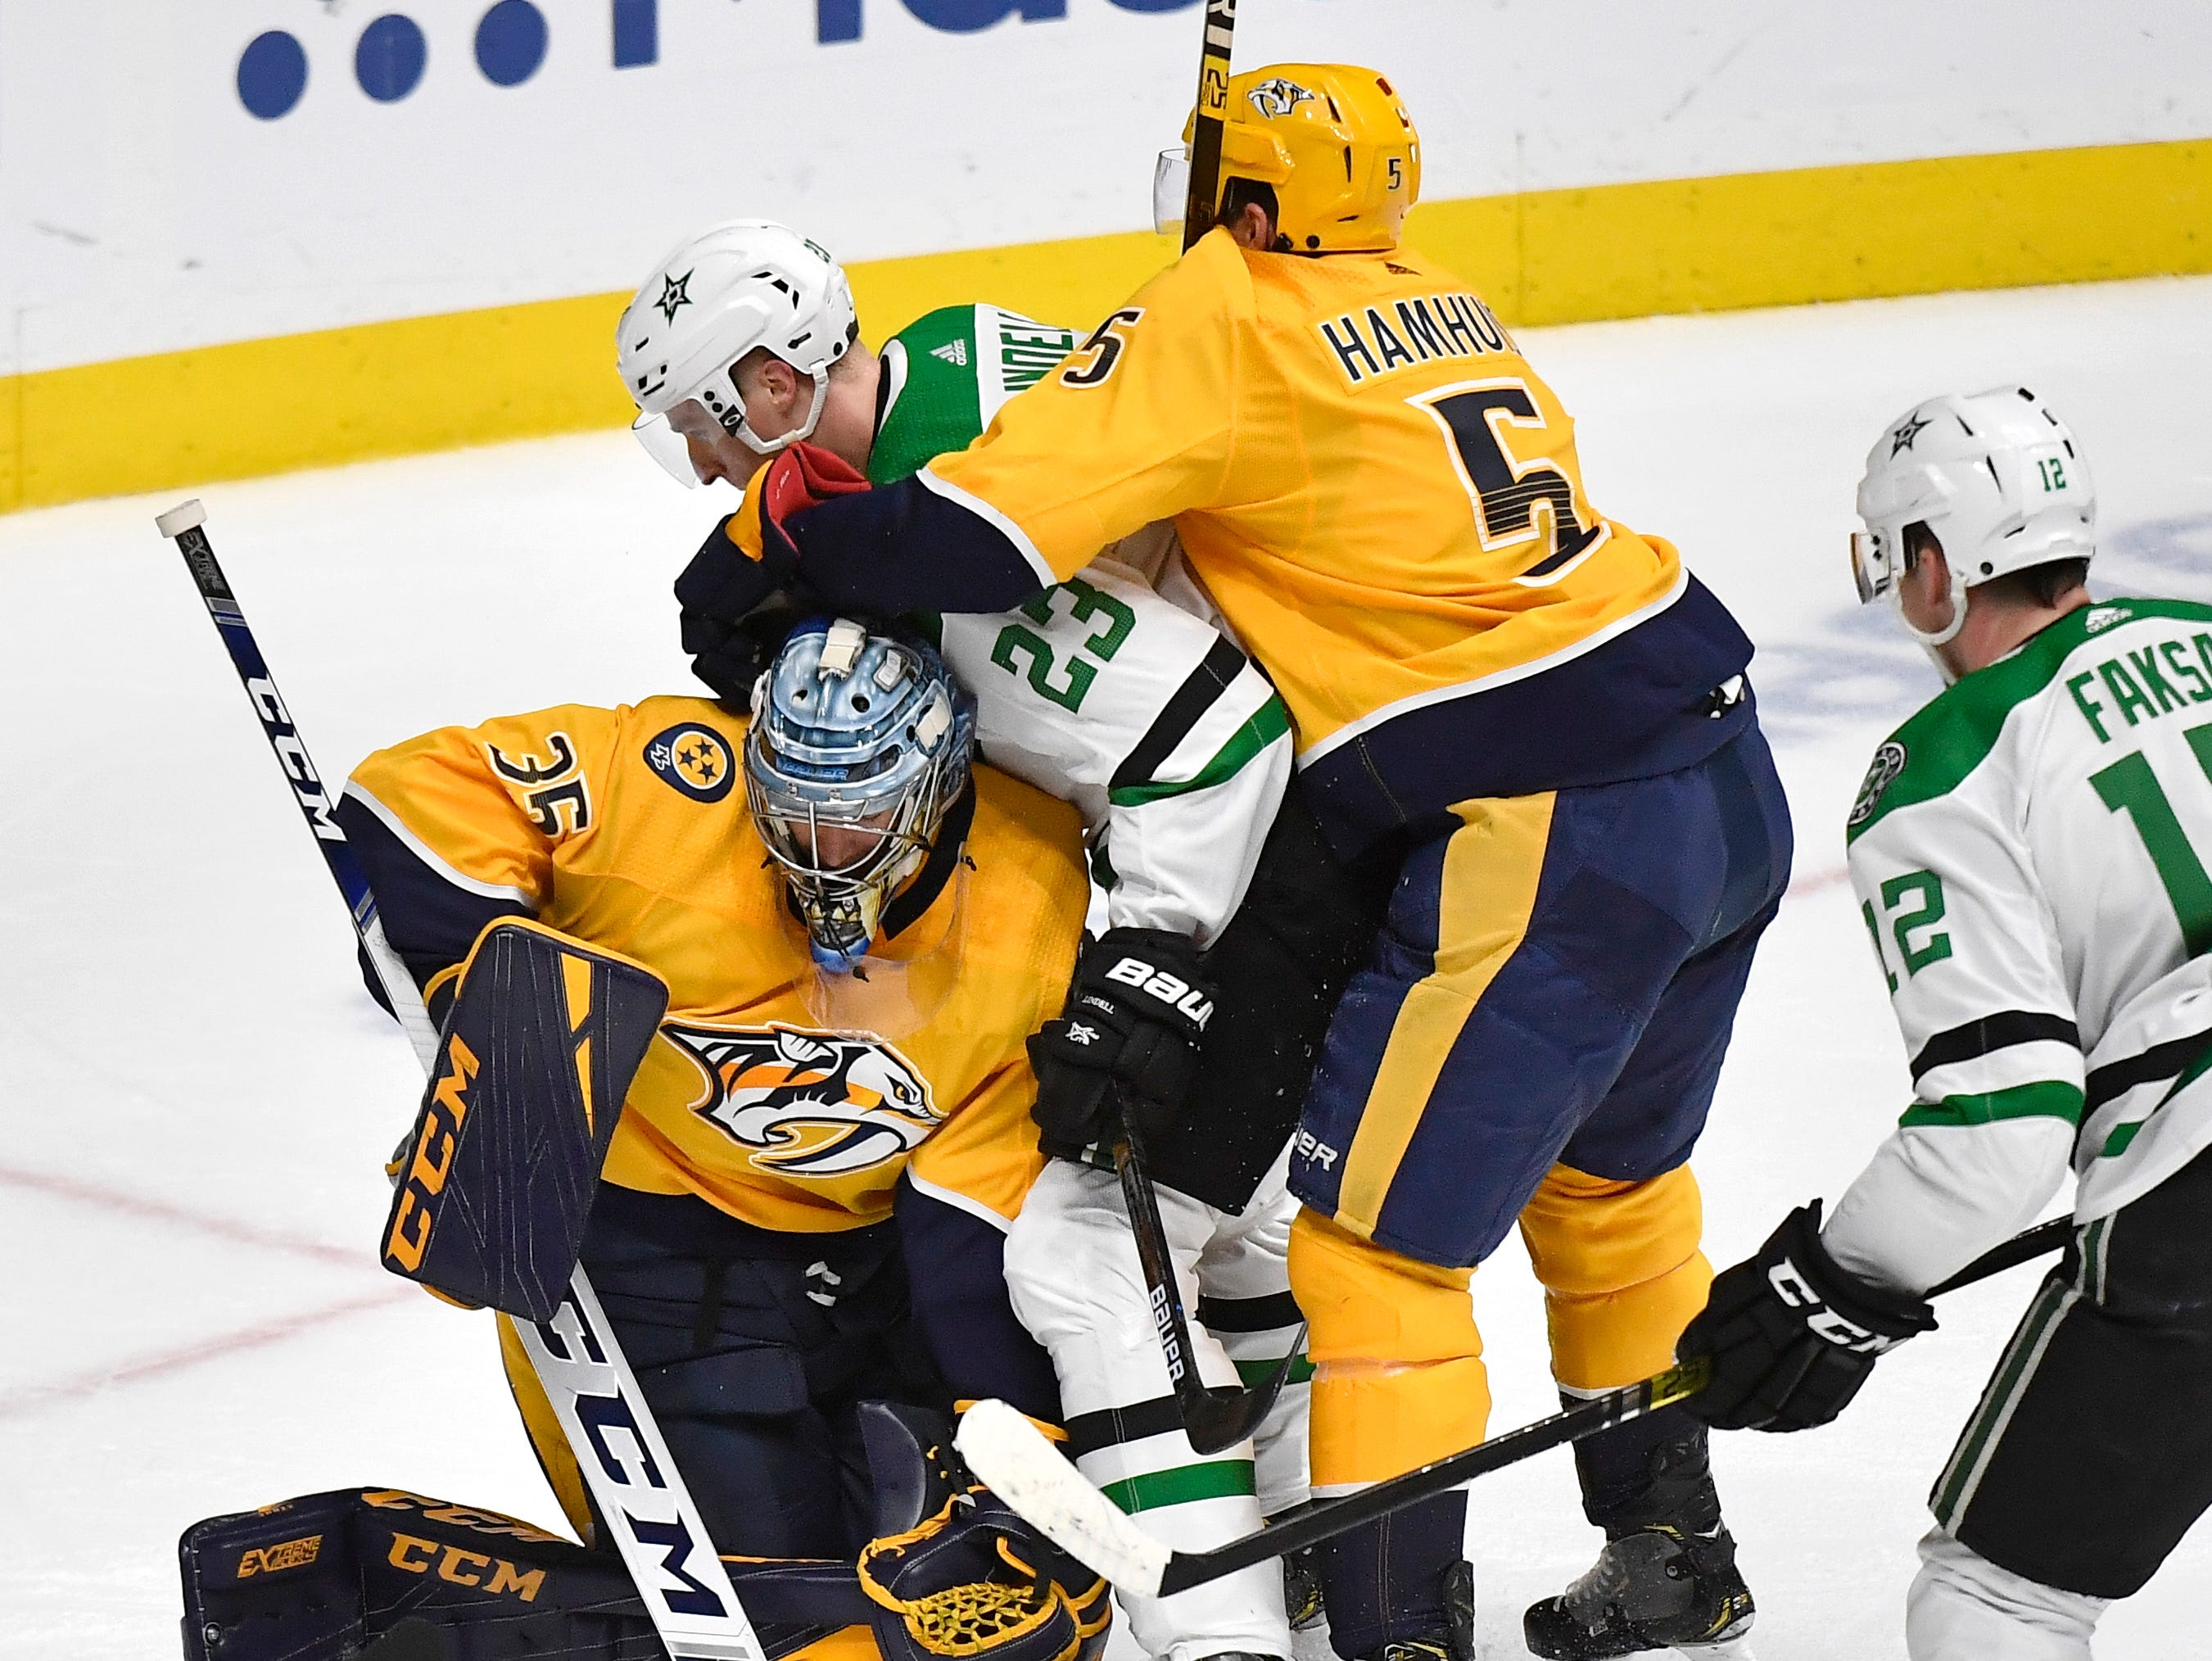 Dallas Stars defenseman Esa Lindell (23) collides with Nashville Predators goaltender Pekka Rinne (35) as Nashville Predators defenseman Dan Hamhuis (5) tries to pull him away during the first period of the divisional semifinal game at Bridgestone Arena in Nashville, Tenn., Saturday, April 13, 2019.